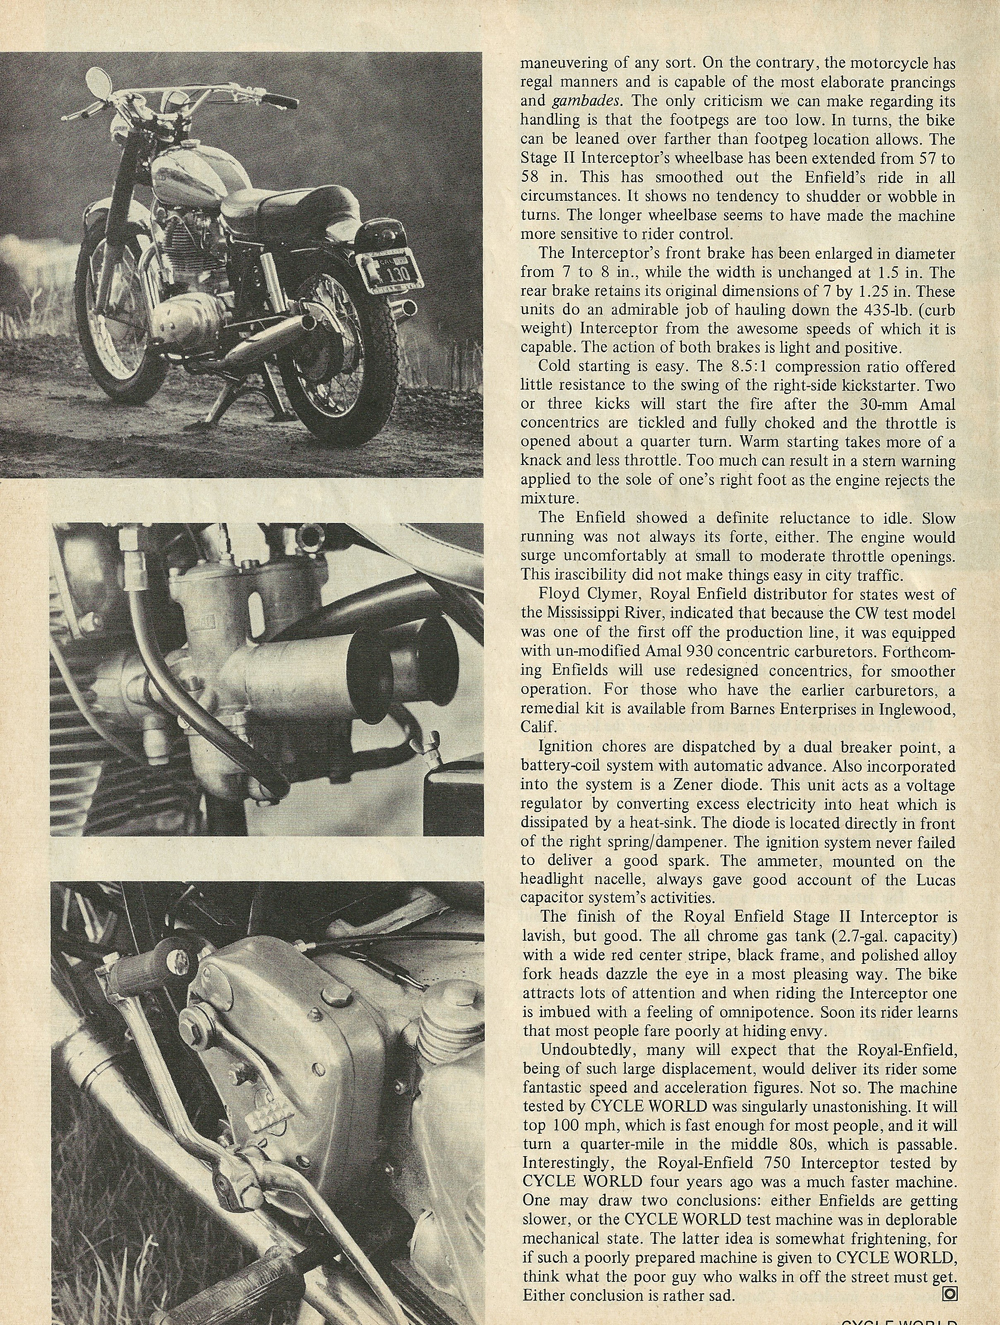 1969 Royal Enfield Stage 2 Interceptor road test 3.jpg